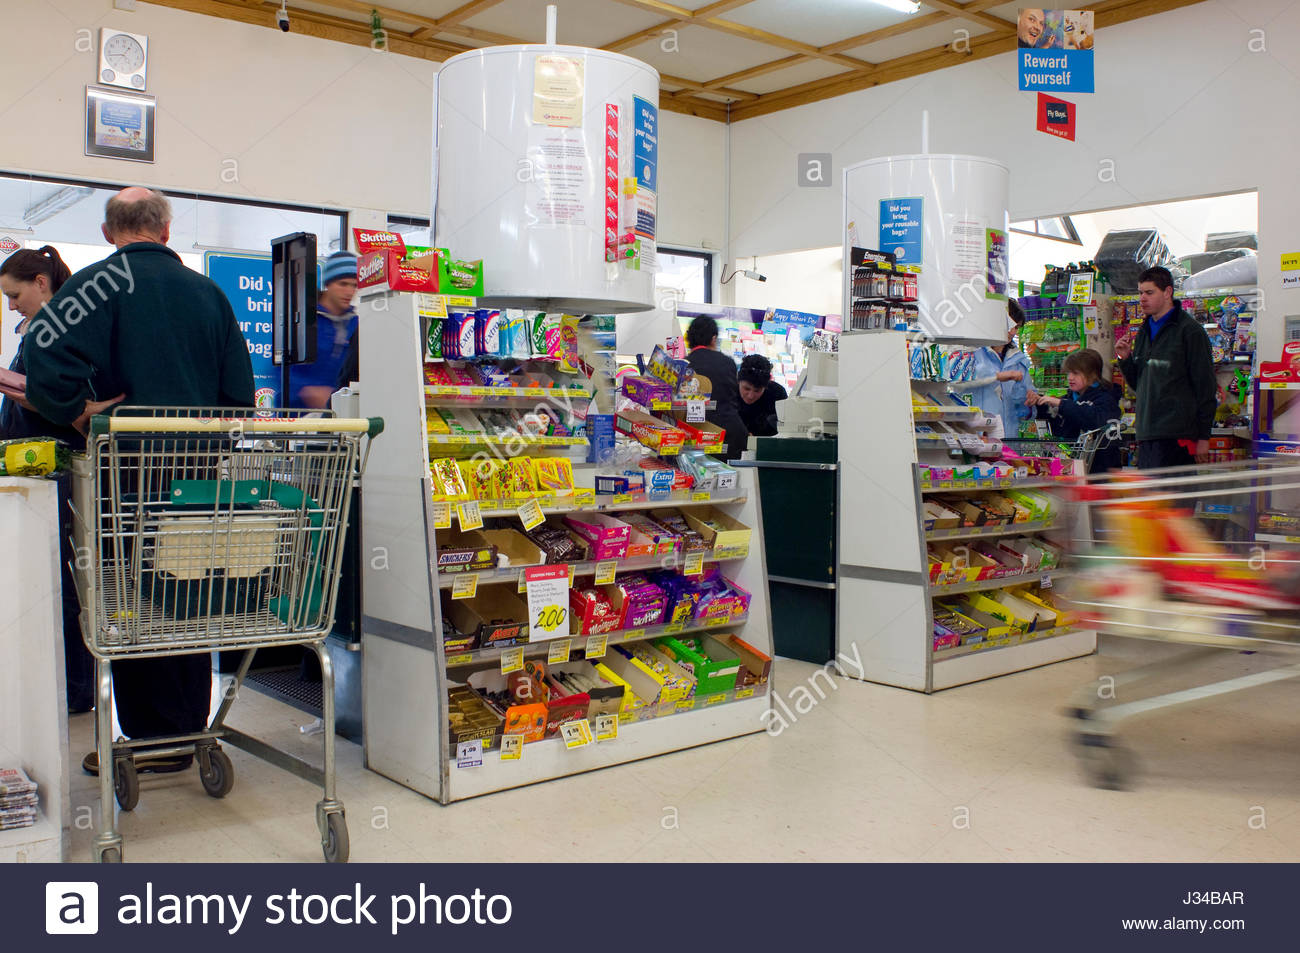 an analysis of the checkout line at the grocery store It's less than a month into 2018 — and while technology hasn't advanced to the point where we're all zooming around in flying cars just yet, we do finally have checkout line-less grocery.